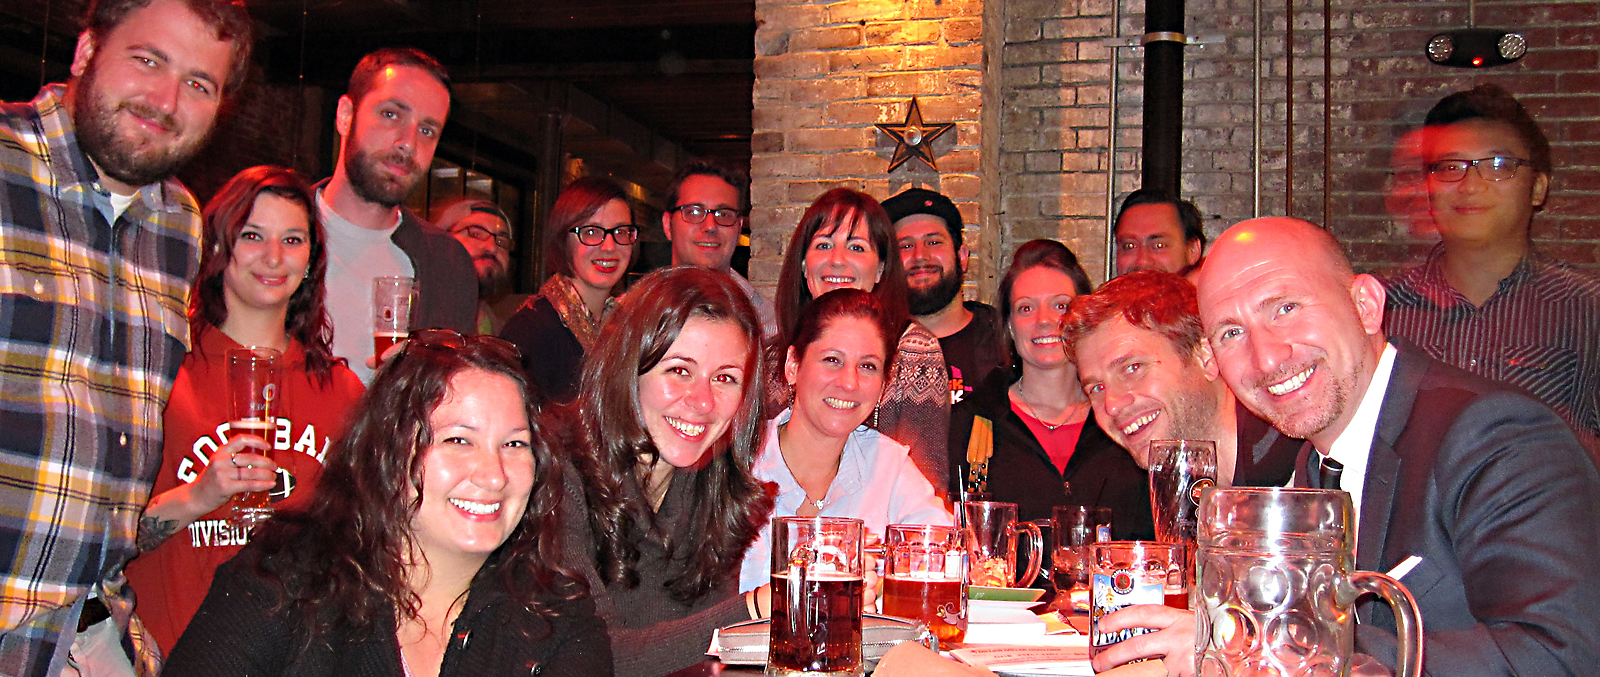 SitP-Philly-group01.jpg